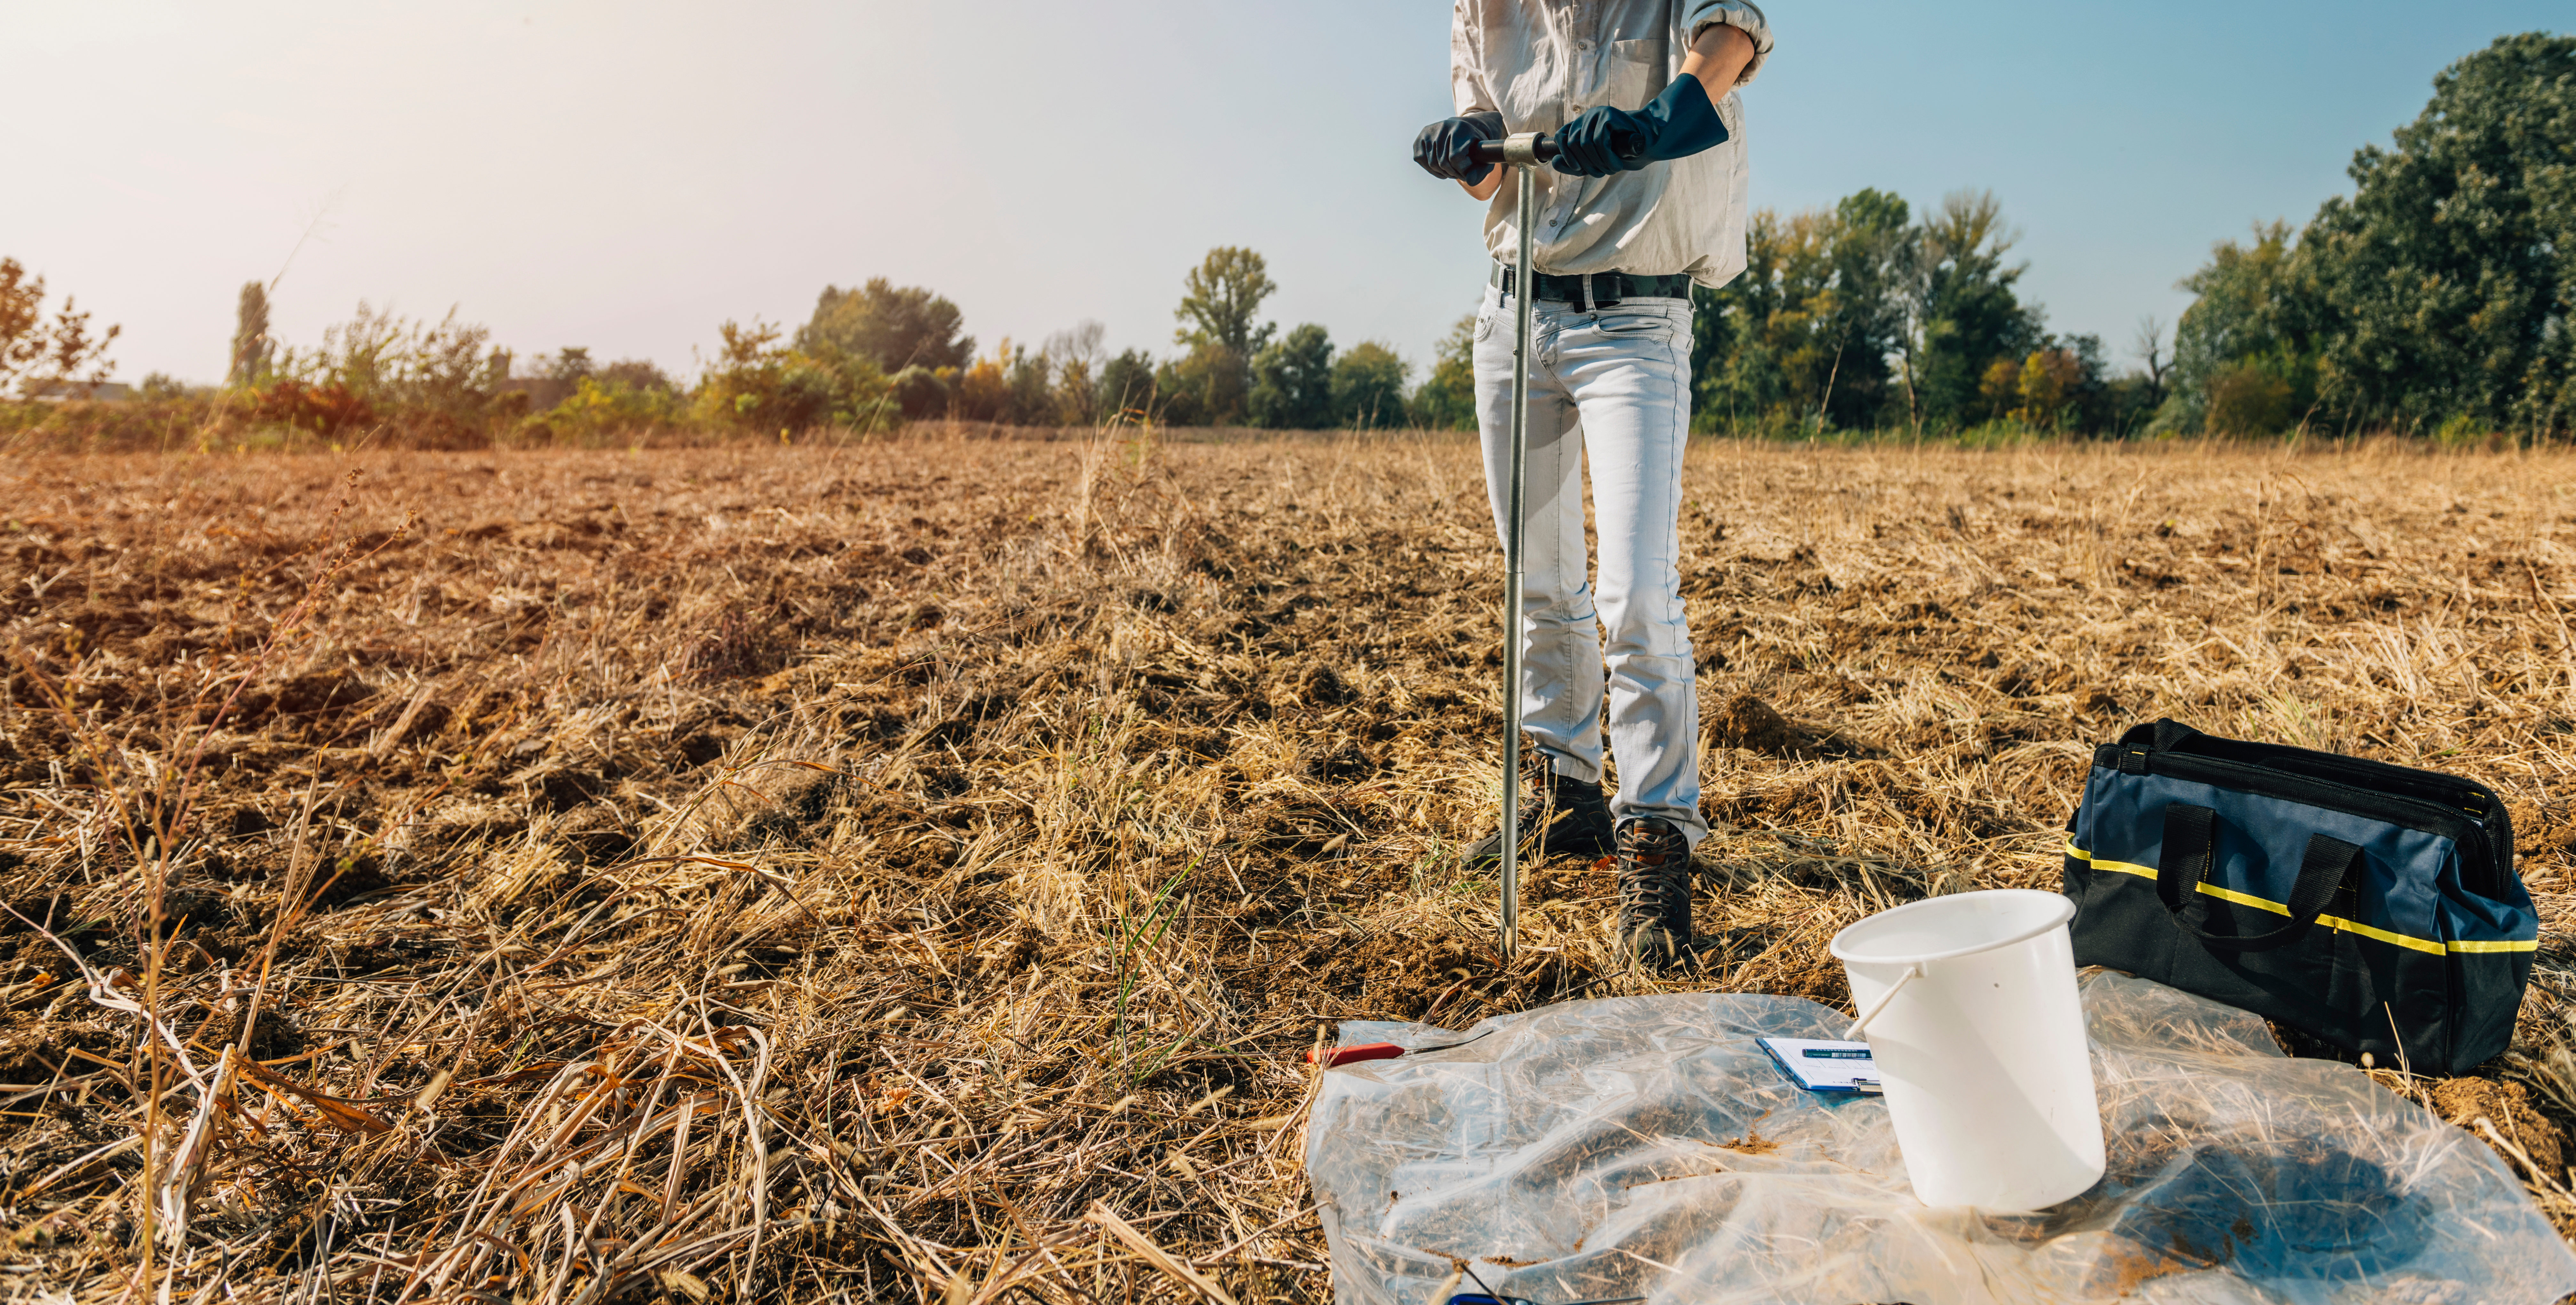 Environmental engineer in a field performing a test to assess the quality of the soil and water